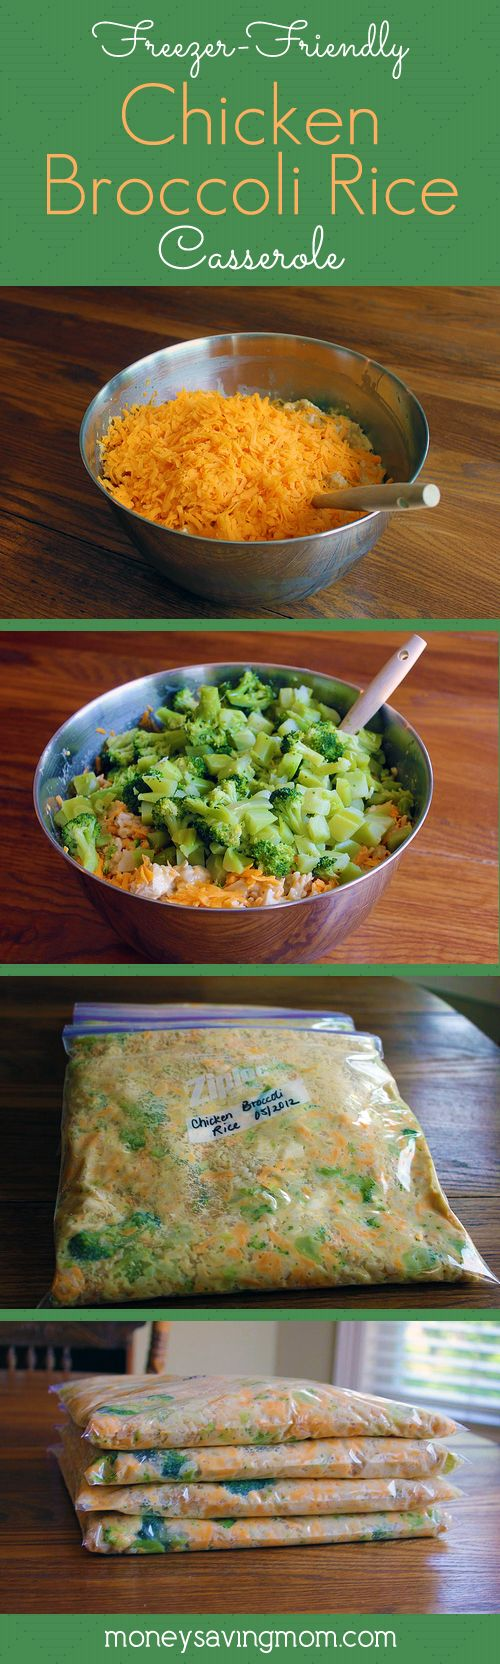 "Freezer Friendly Chicken Broccoli Rice Casserole -- makes (4) 8x8 casseroles. Need: 10 c. cooked rice (white or brown); 4 c. cooked chicken, chopped; 4 c. chopped broccoli, lightly steamed (can use frozen or fresh); 2 cans cream of mushroom soup; 2 cans cream of chicken soup; 4 c. shredded cheddar cheese; salt and pepper to taste. (Also has recipe to make your own ""cream of"" soups)"